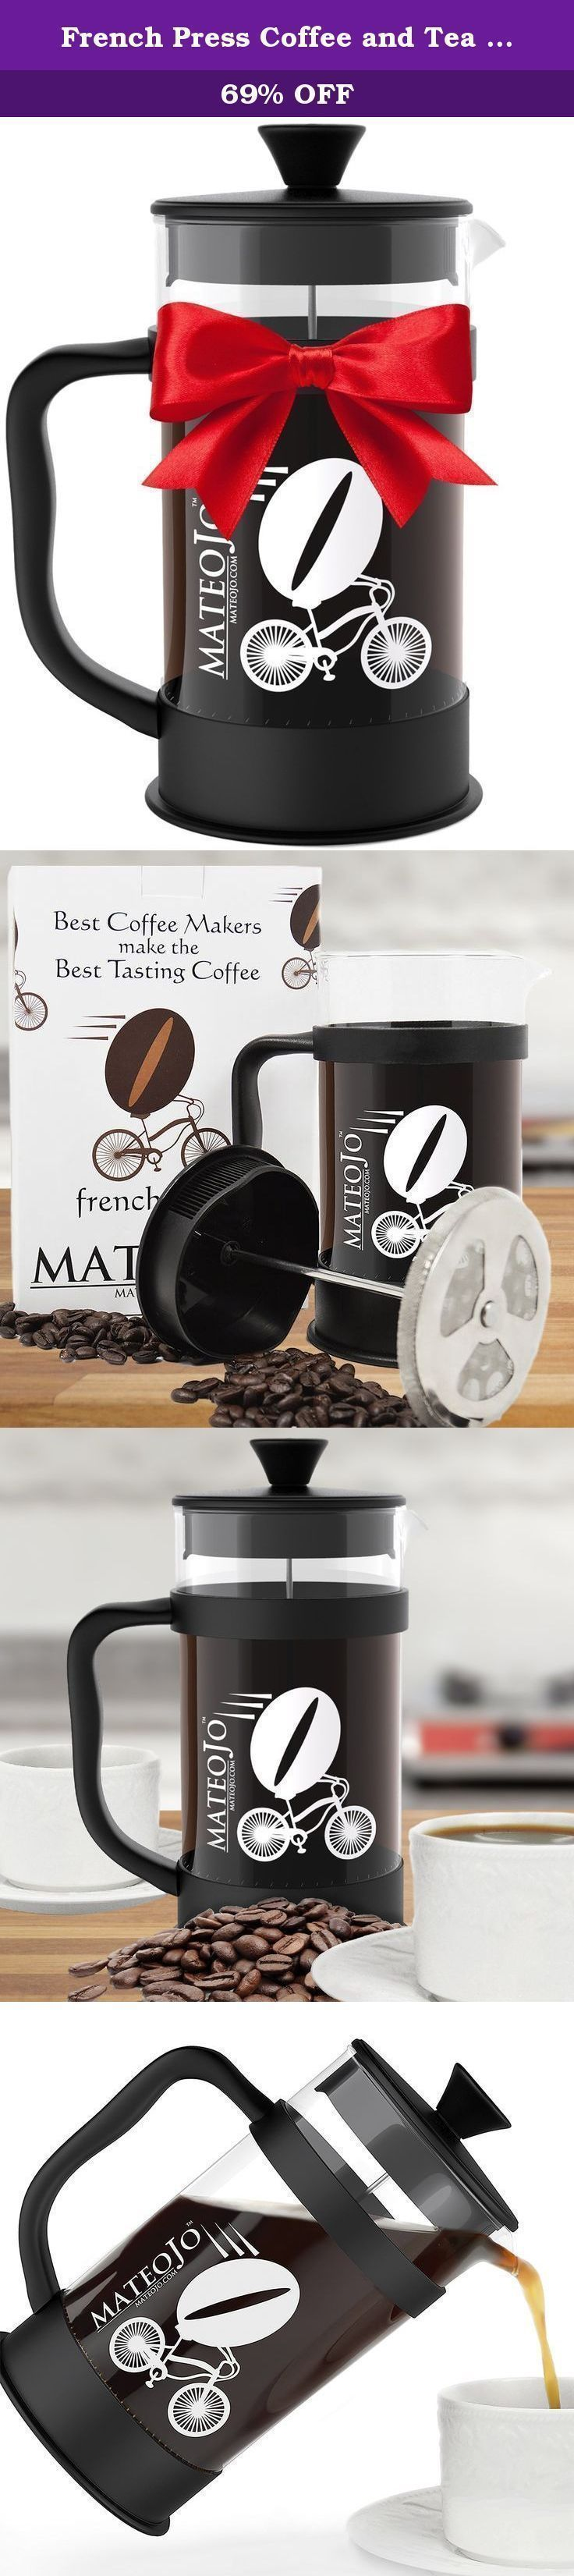 French Press Coffee and Tea Maker - Press Pot - Cafetiere - Carafe and Plunger - 34 Oz by MateoJo. Step-up your coffee experience! It's easy to use and makes great coffee in minutes. Beginner? No problem. Instructions in every box plus How-to videos on our website. Great for road trips and camping too! Compact, easy to pack, and simple to use -- just coffee and hot water for a taste that's better than home! Great for cold brew coffee too! Designed for a premium coffee experience , your 8…